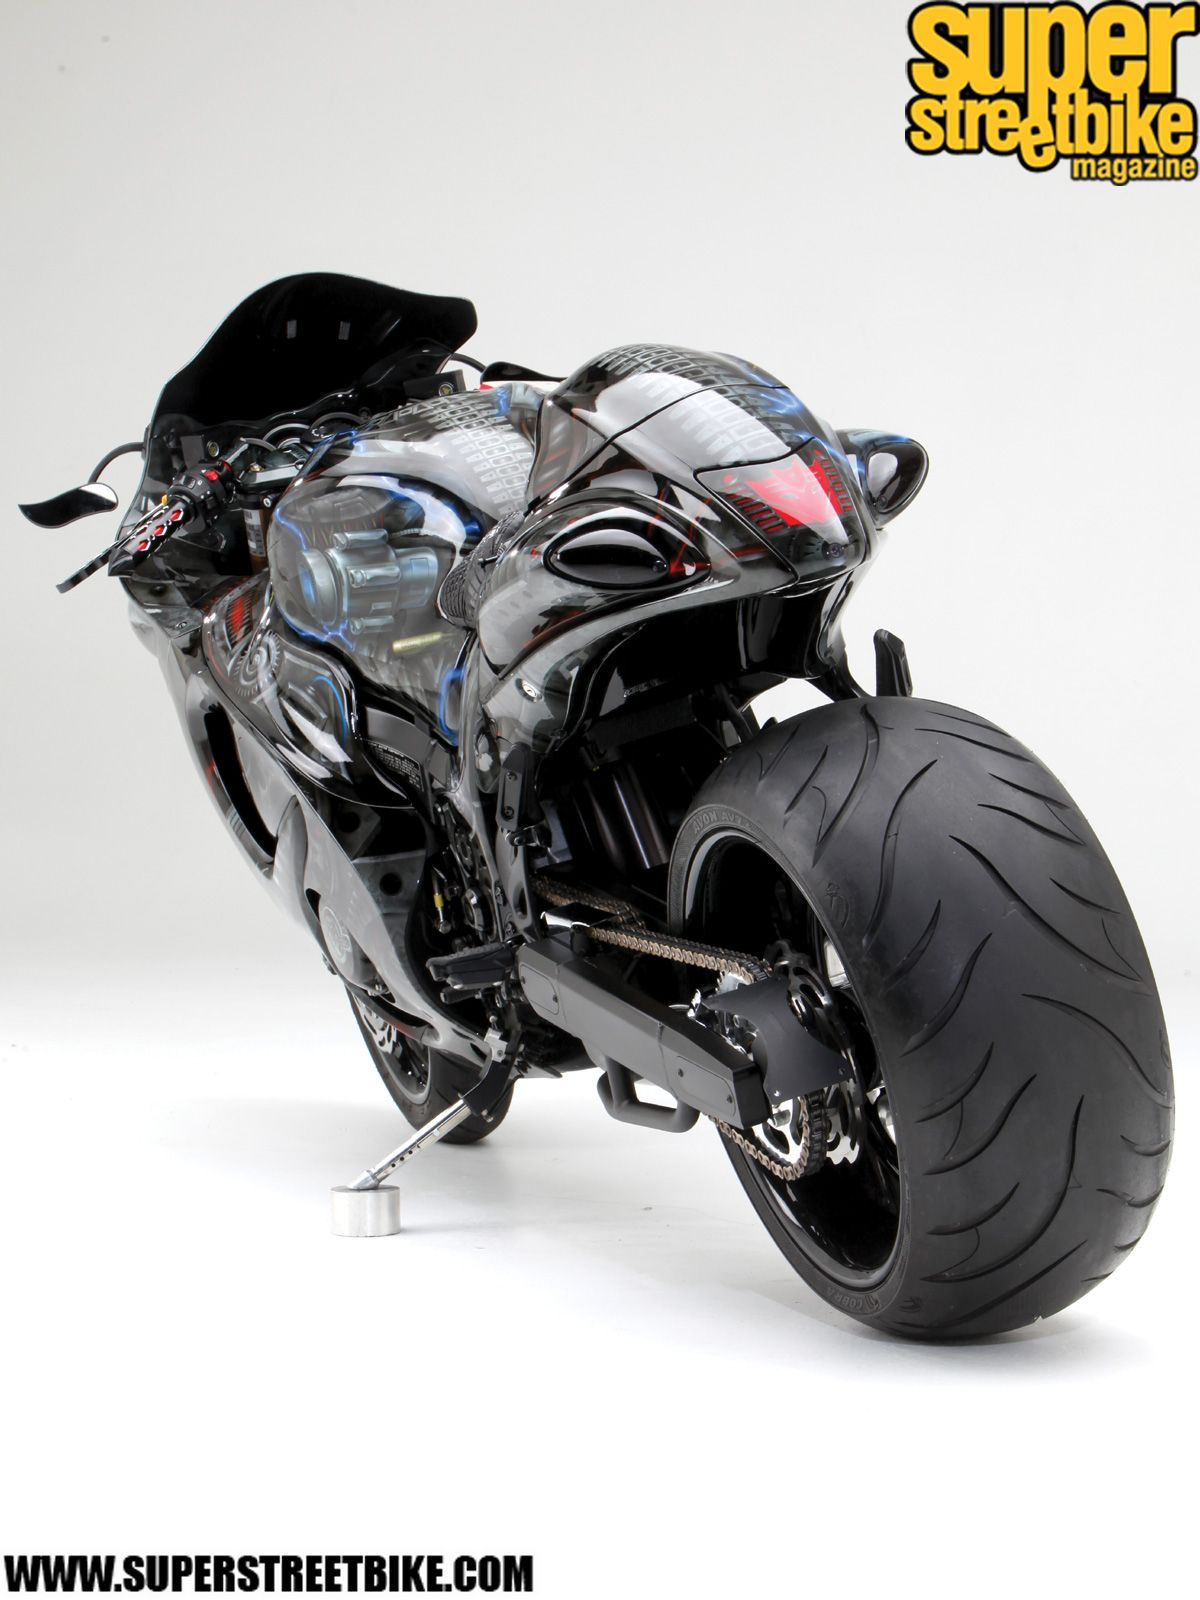 Suzuki Hayabusa Is In Top 10 Of The Fastest Bikes Of The World